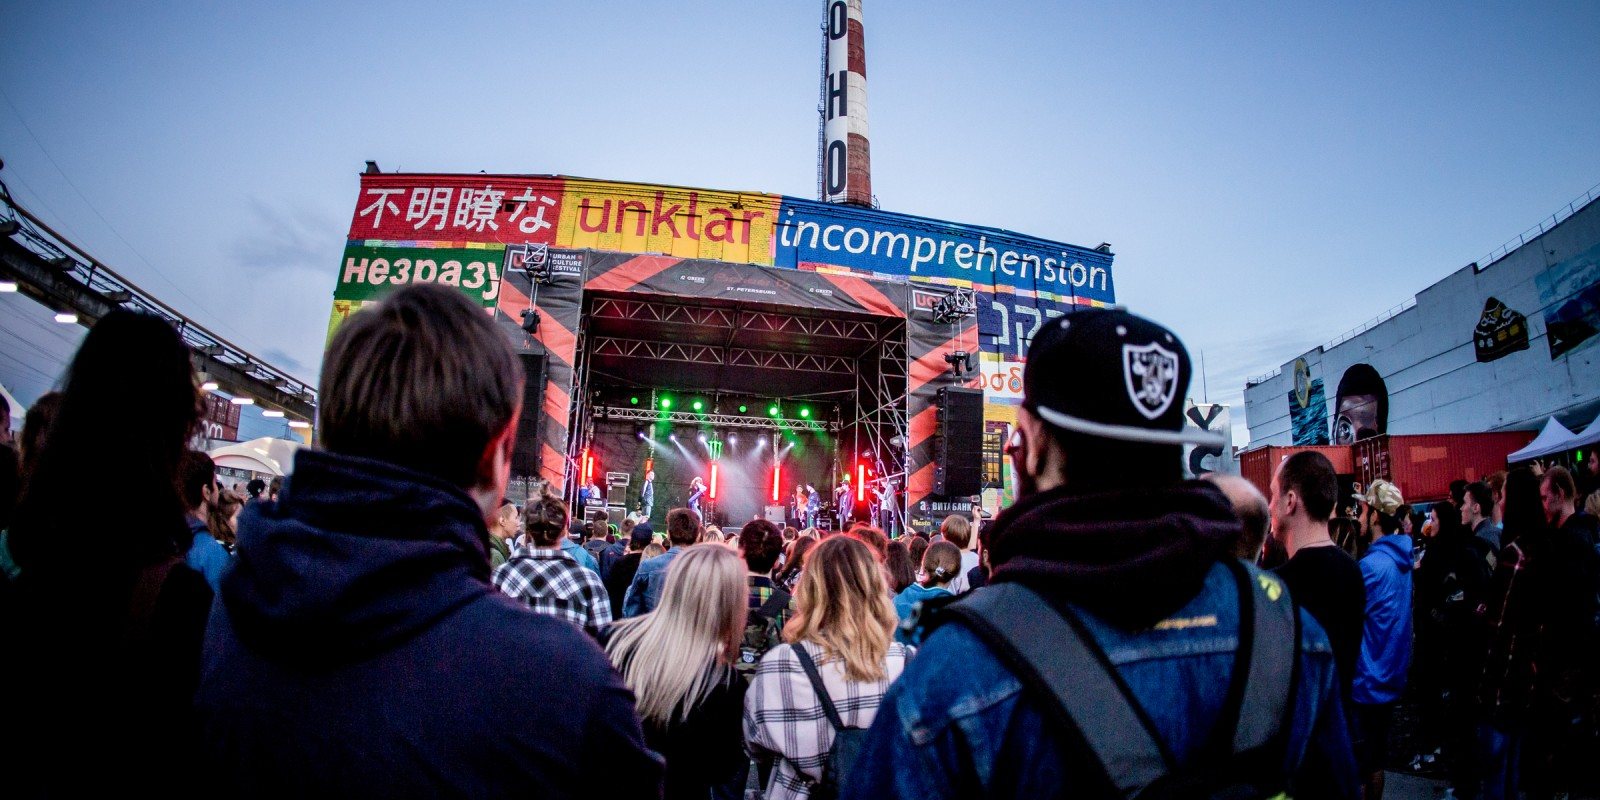 Images from an Urban Culture Fest in Saint Petersburg.